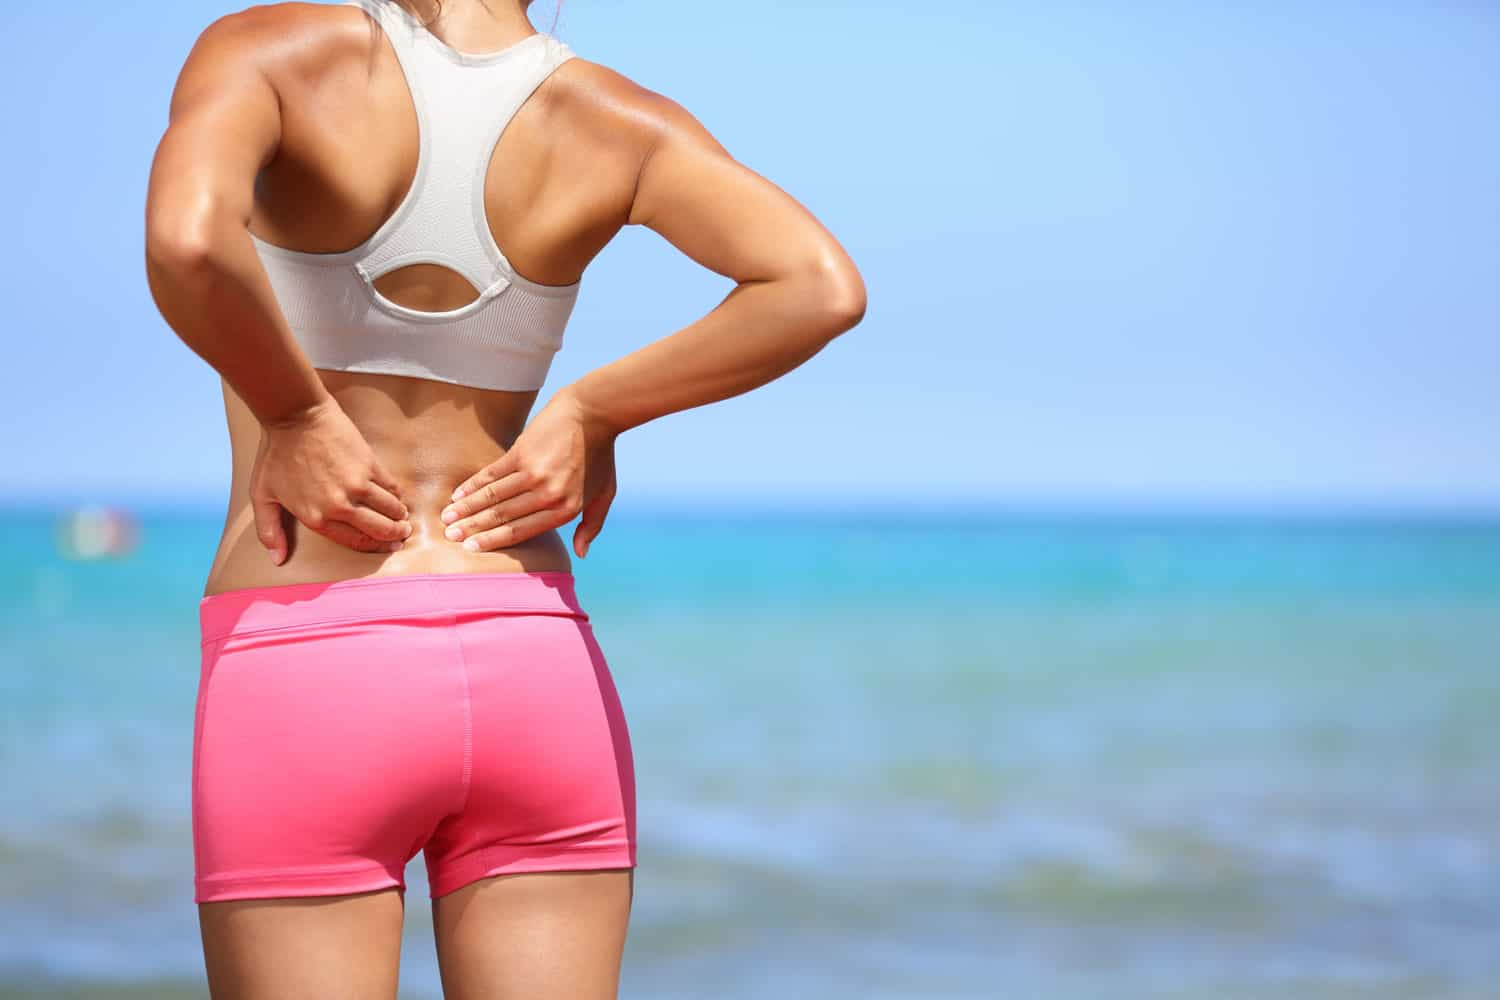 instant back pain relief tips